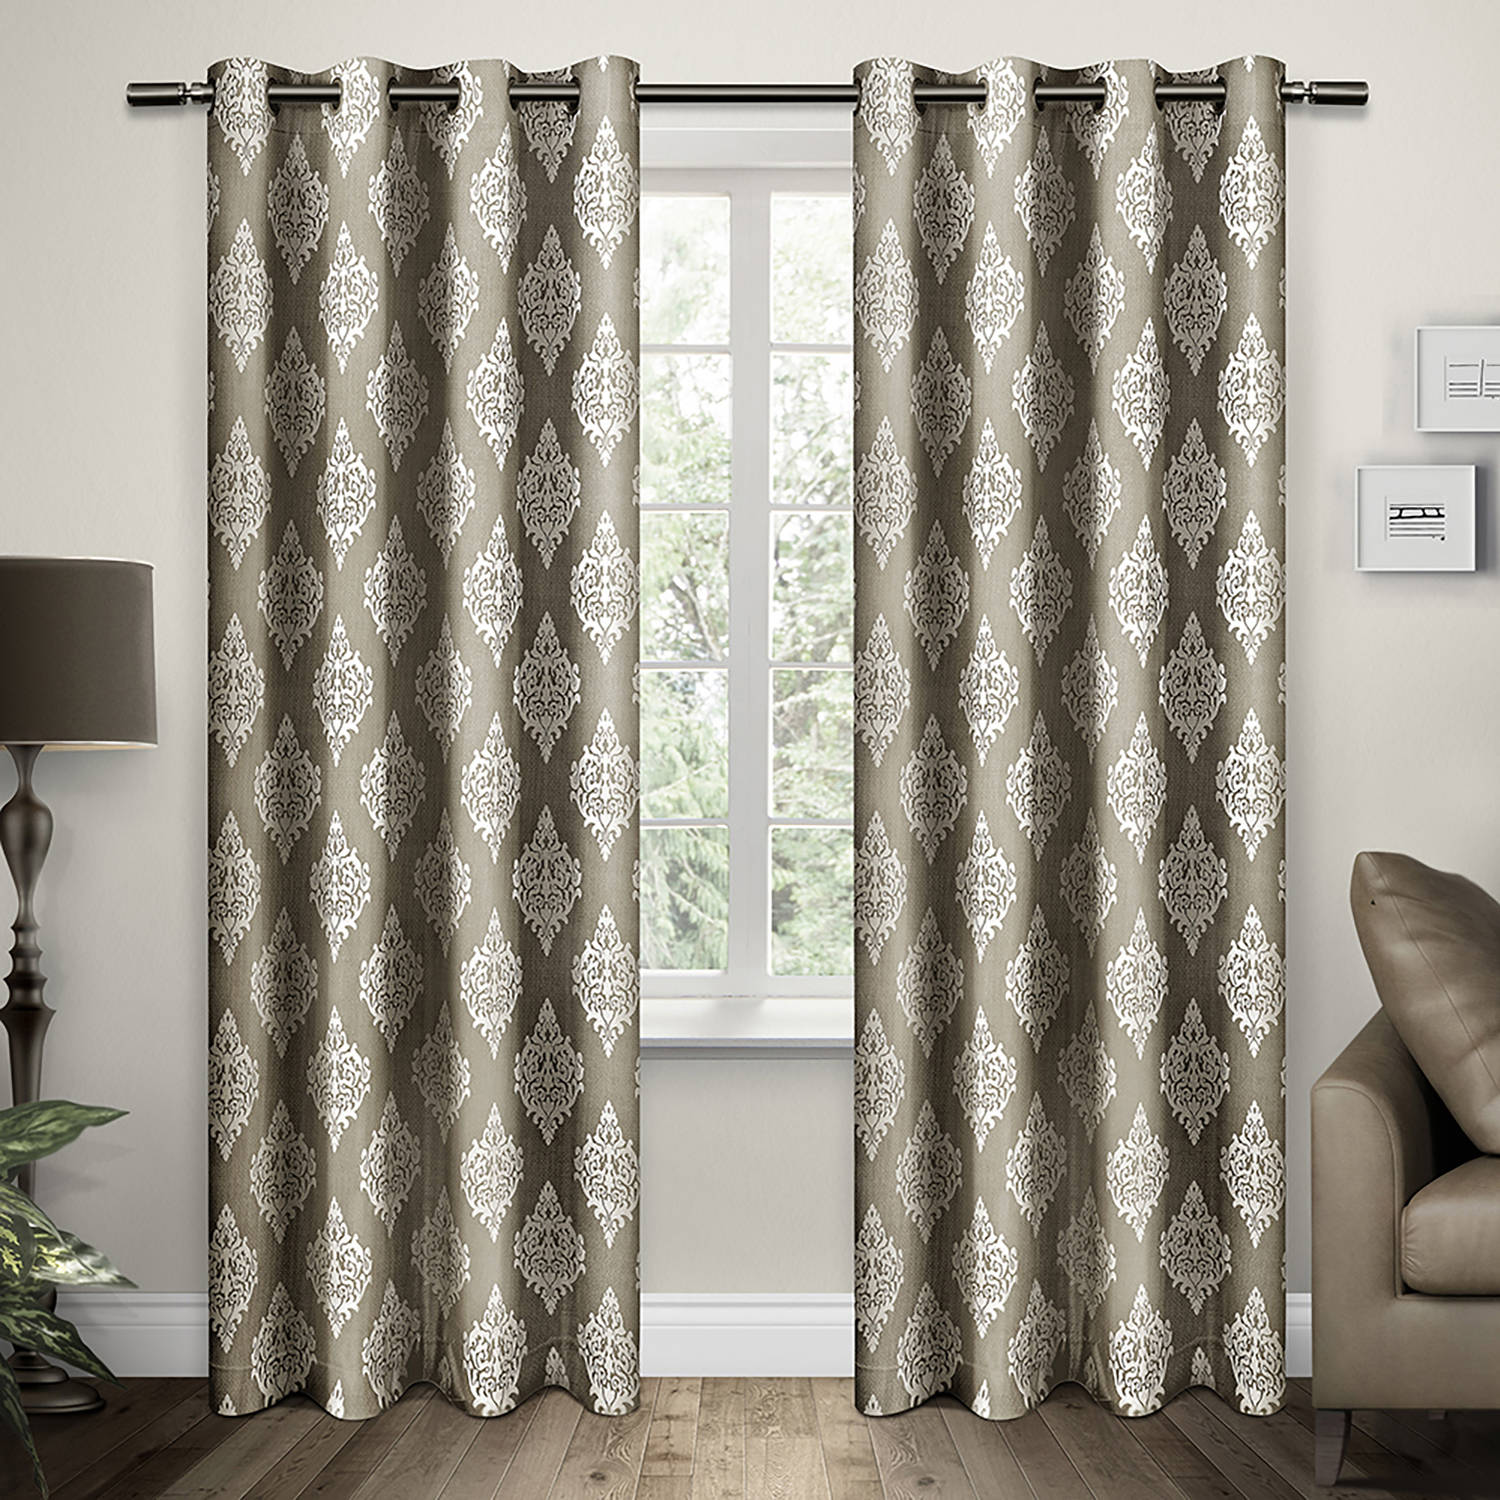 Exclusive Home Damask Taupe Grommet Top 54 x 84-inch Curtain Panel Pair